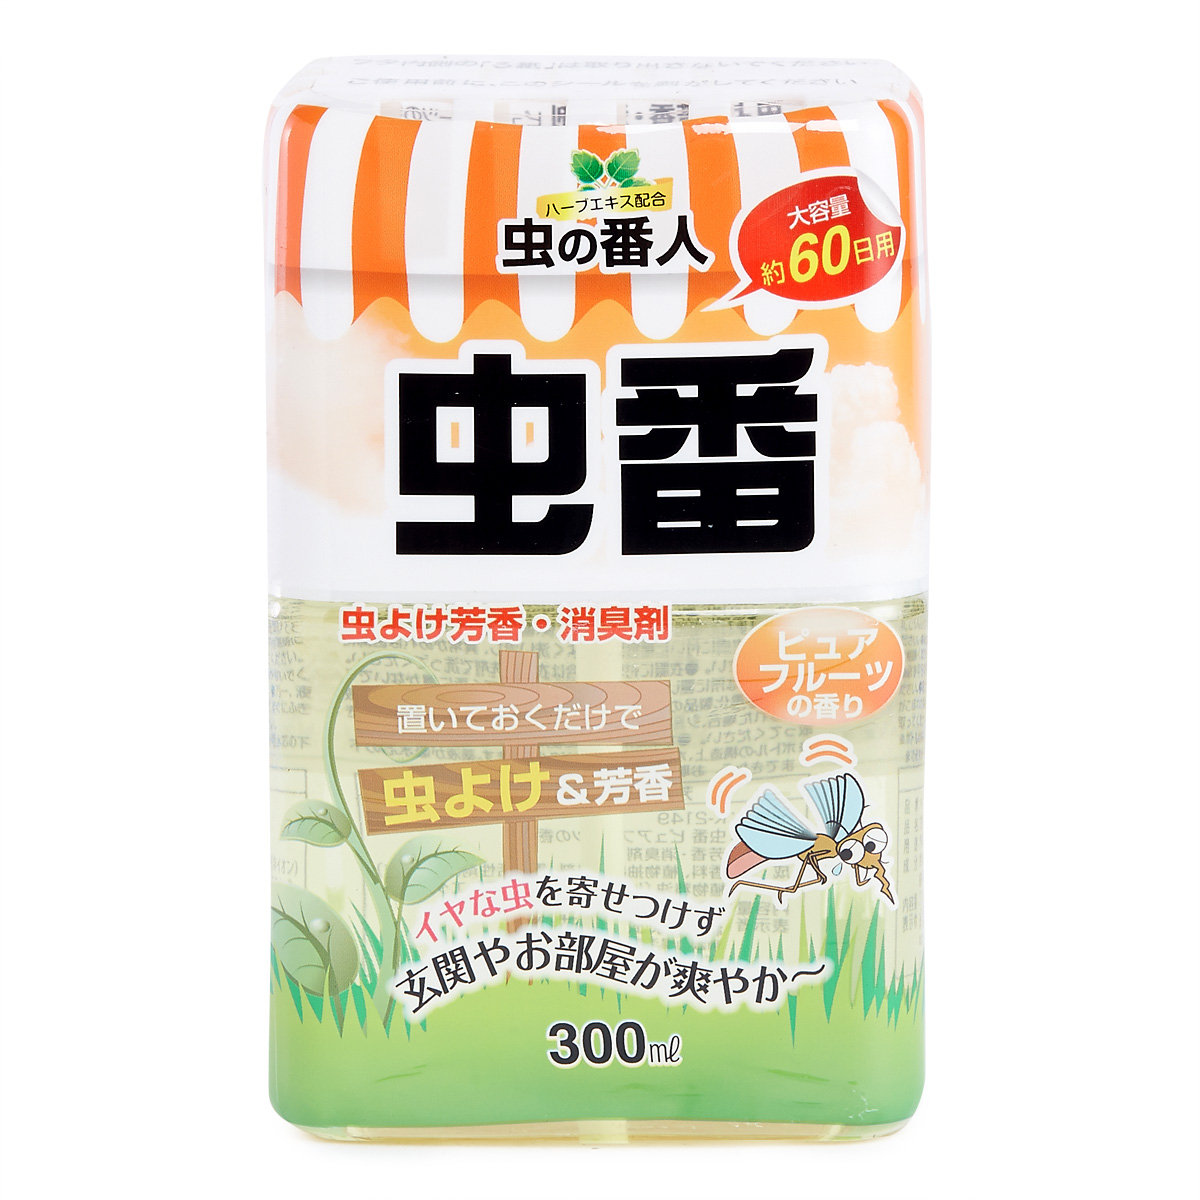 Insect Repellent Peach